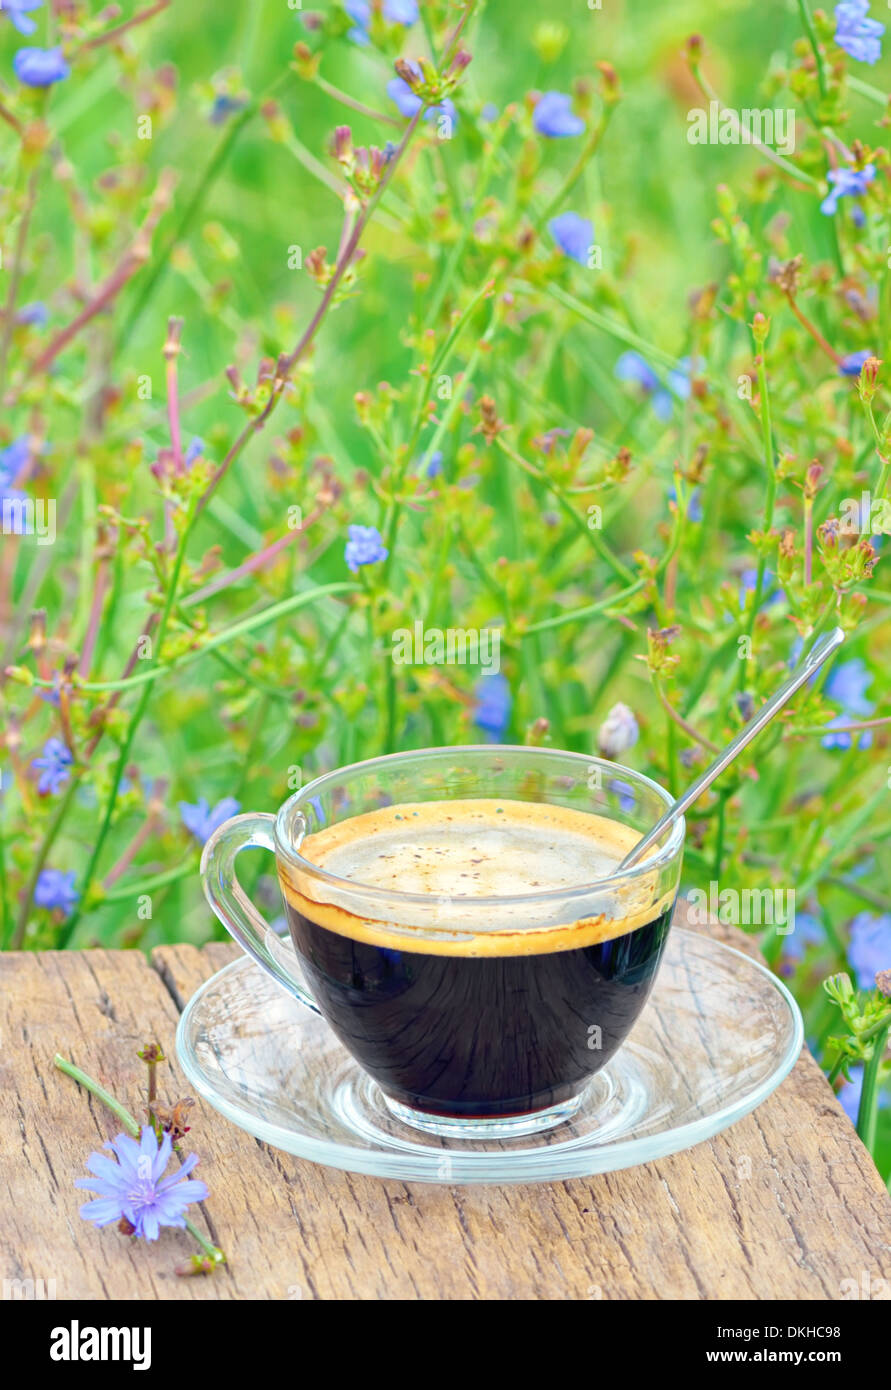 diet drink chicory is coffee substitutes - Stock Image